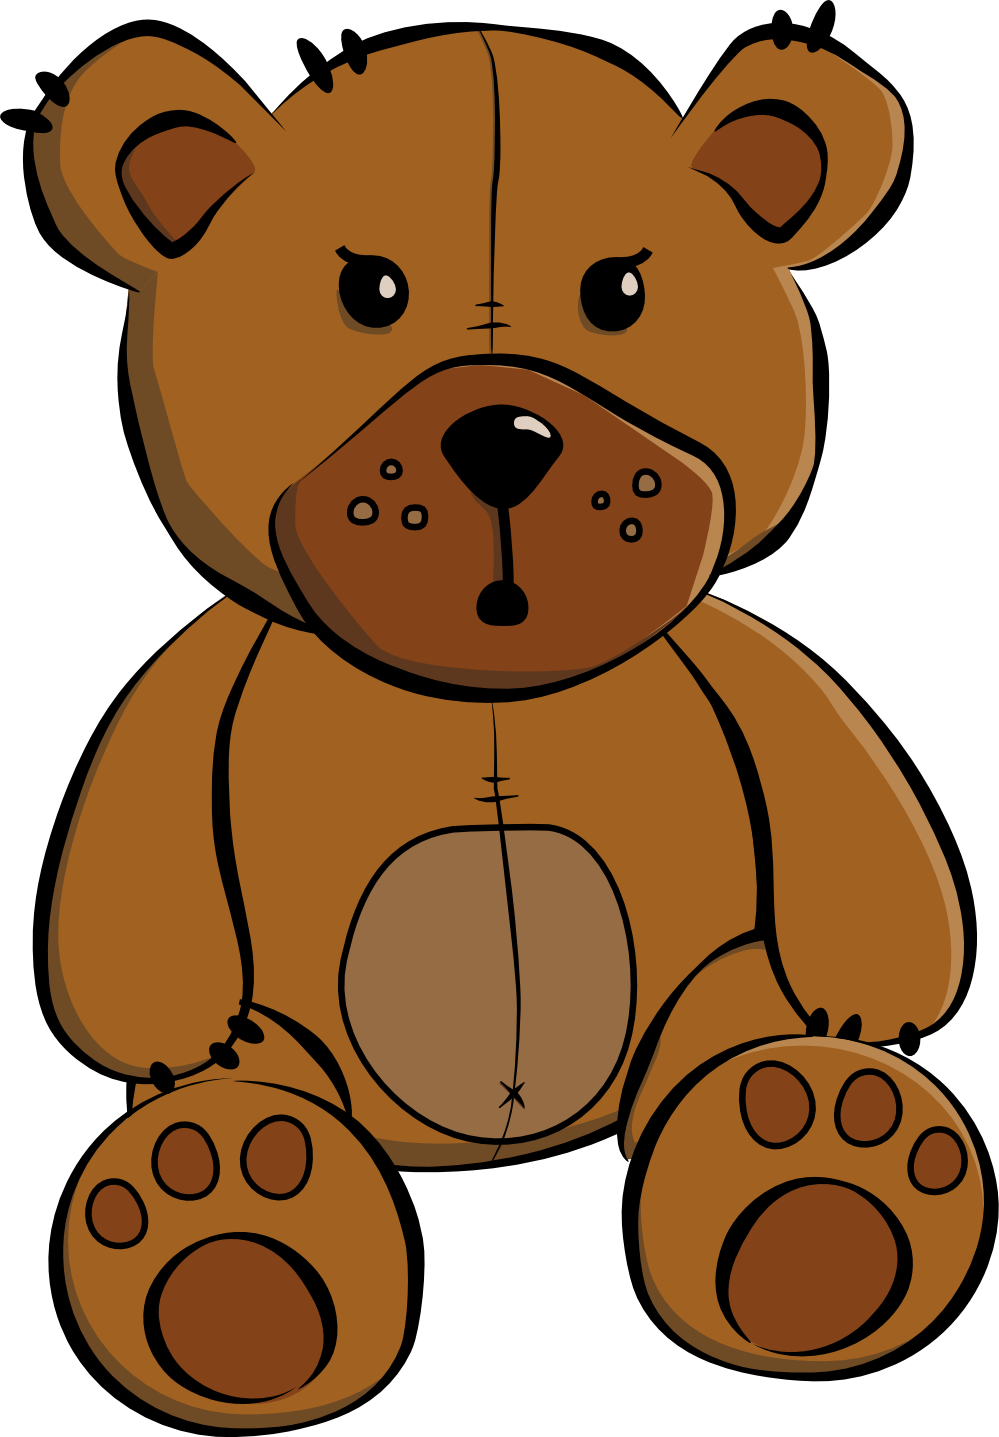 Stuff animal clipart svg royalty free stock Free Teddy Bears Clipart, Download Free Clip Art, Free Clip Art on ... svg royalty free stock